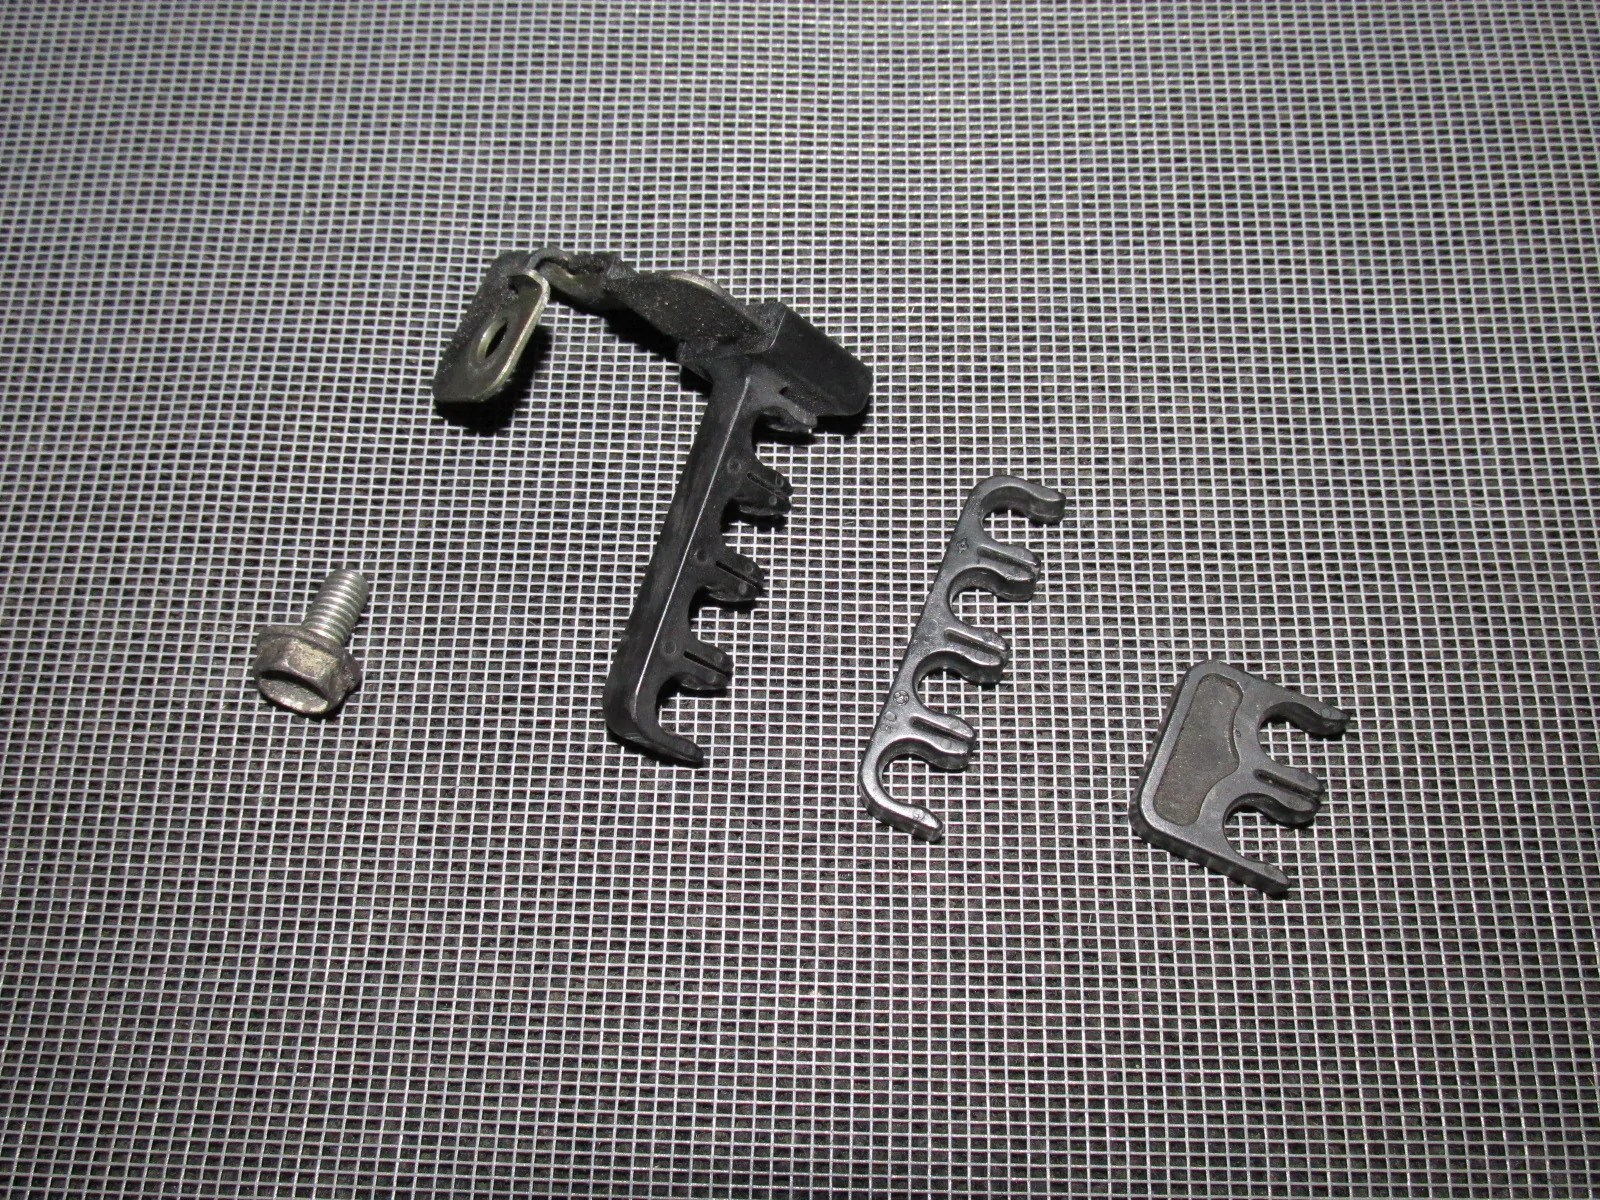 hight resolution of  96 97 98 99 00 honda civic oem ignition wires holder clips